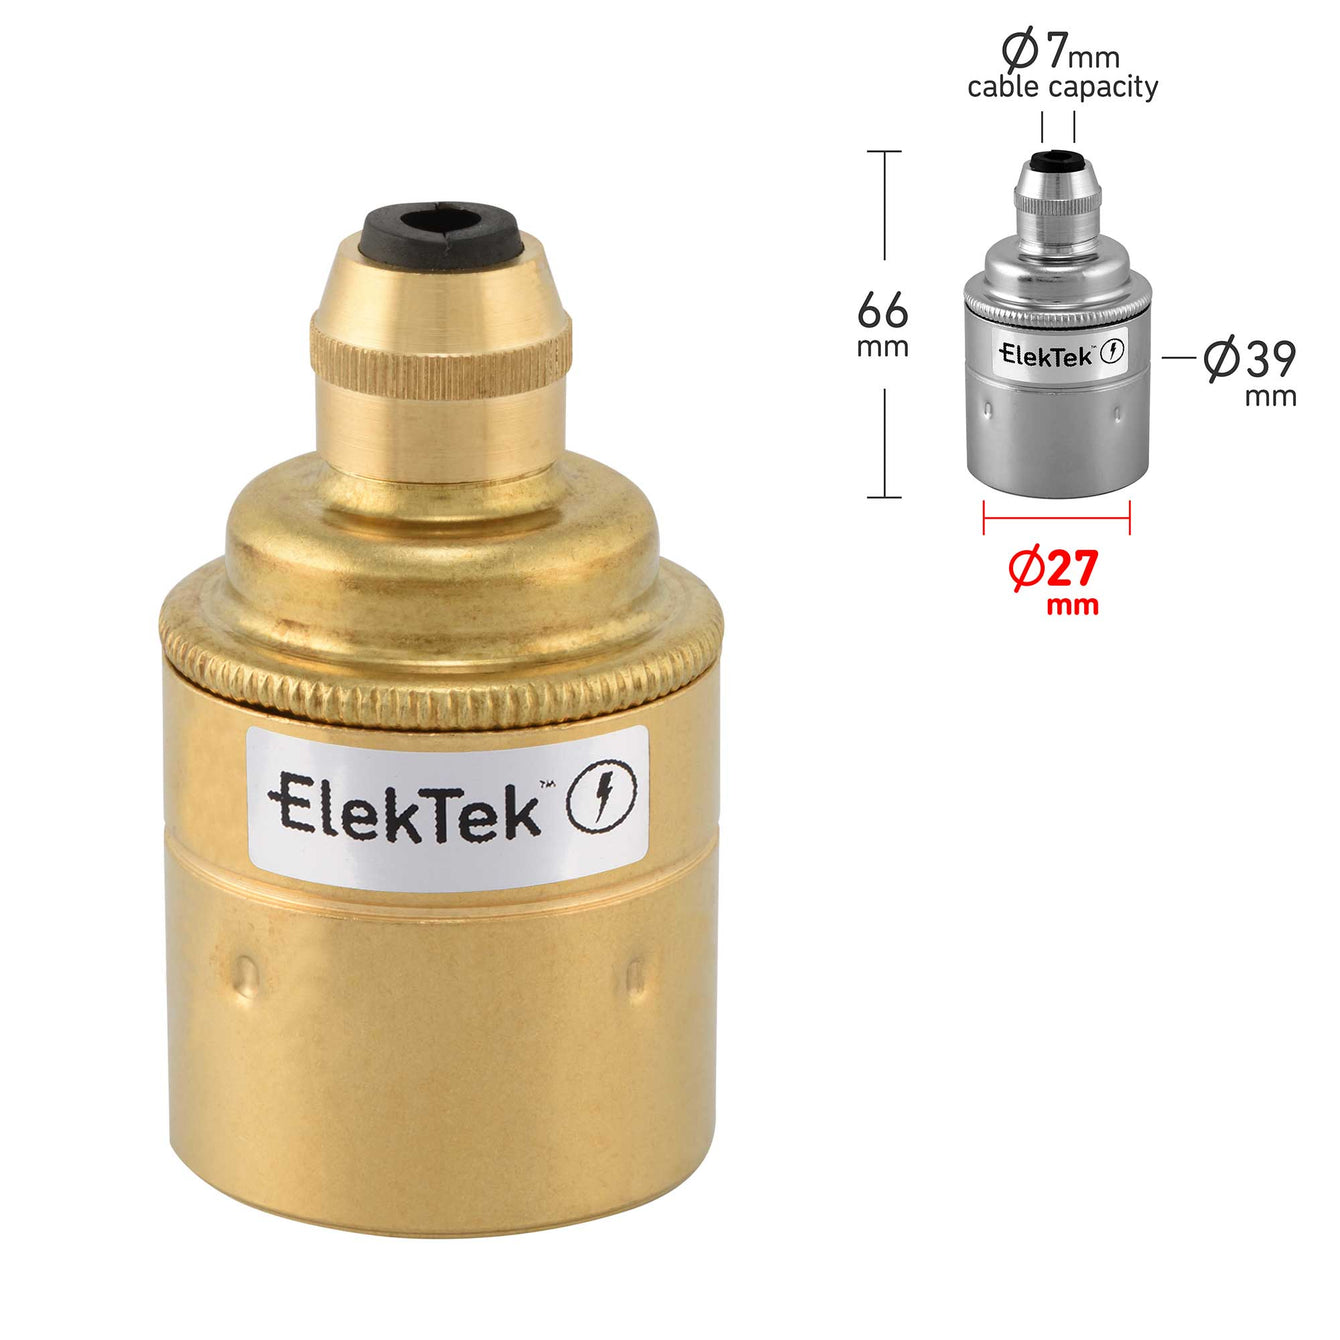 ElekTek ES Edison Screw E27 Cord Grip Pendant Lamp Holder Plain Skirt Brass - Buy It Better Antique Brass